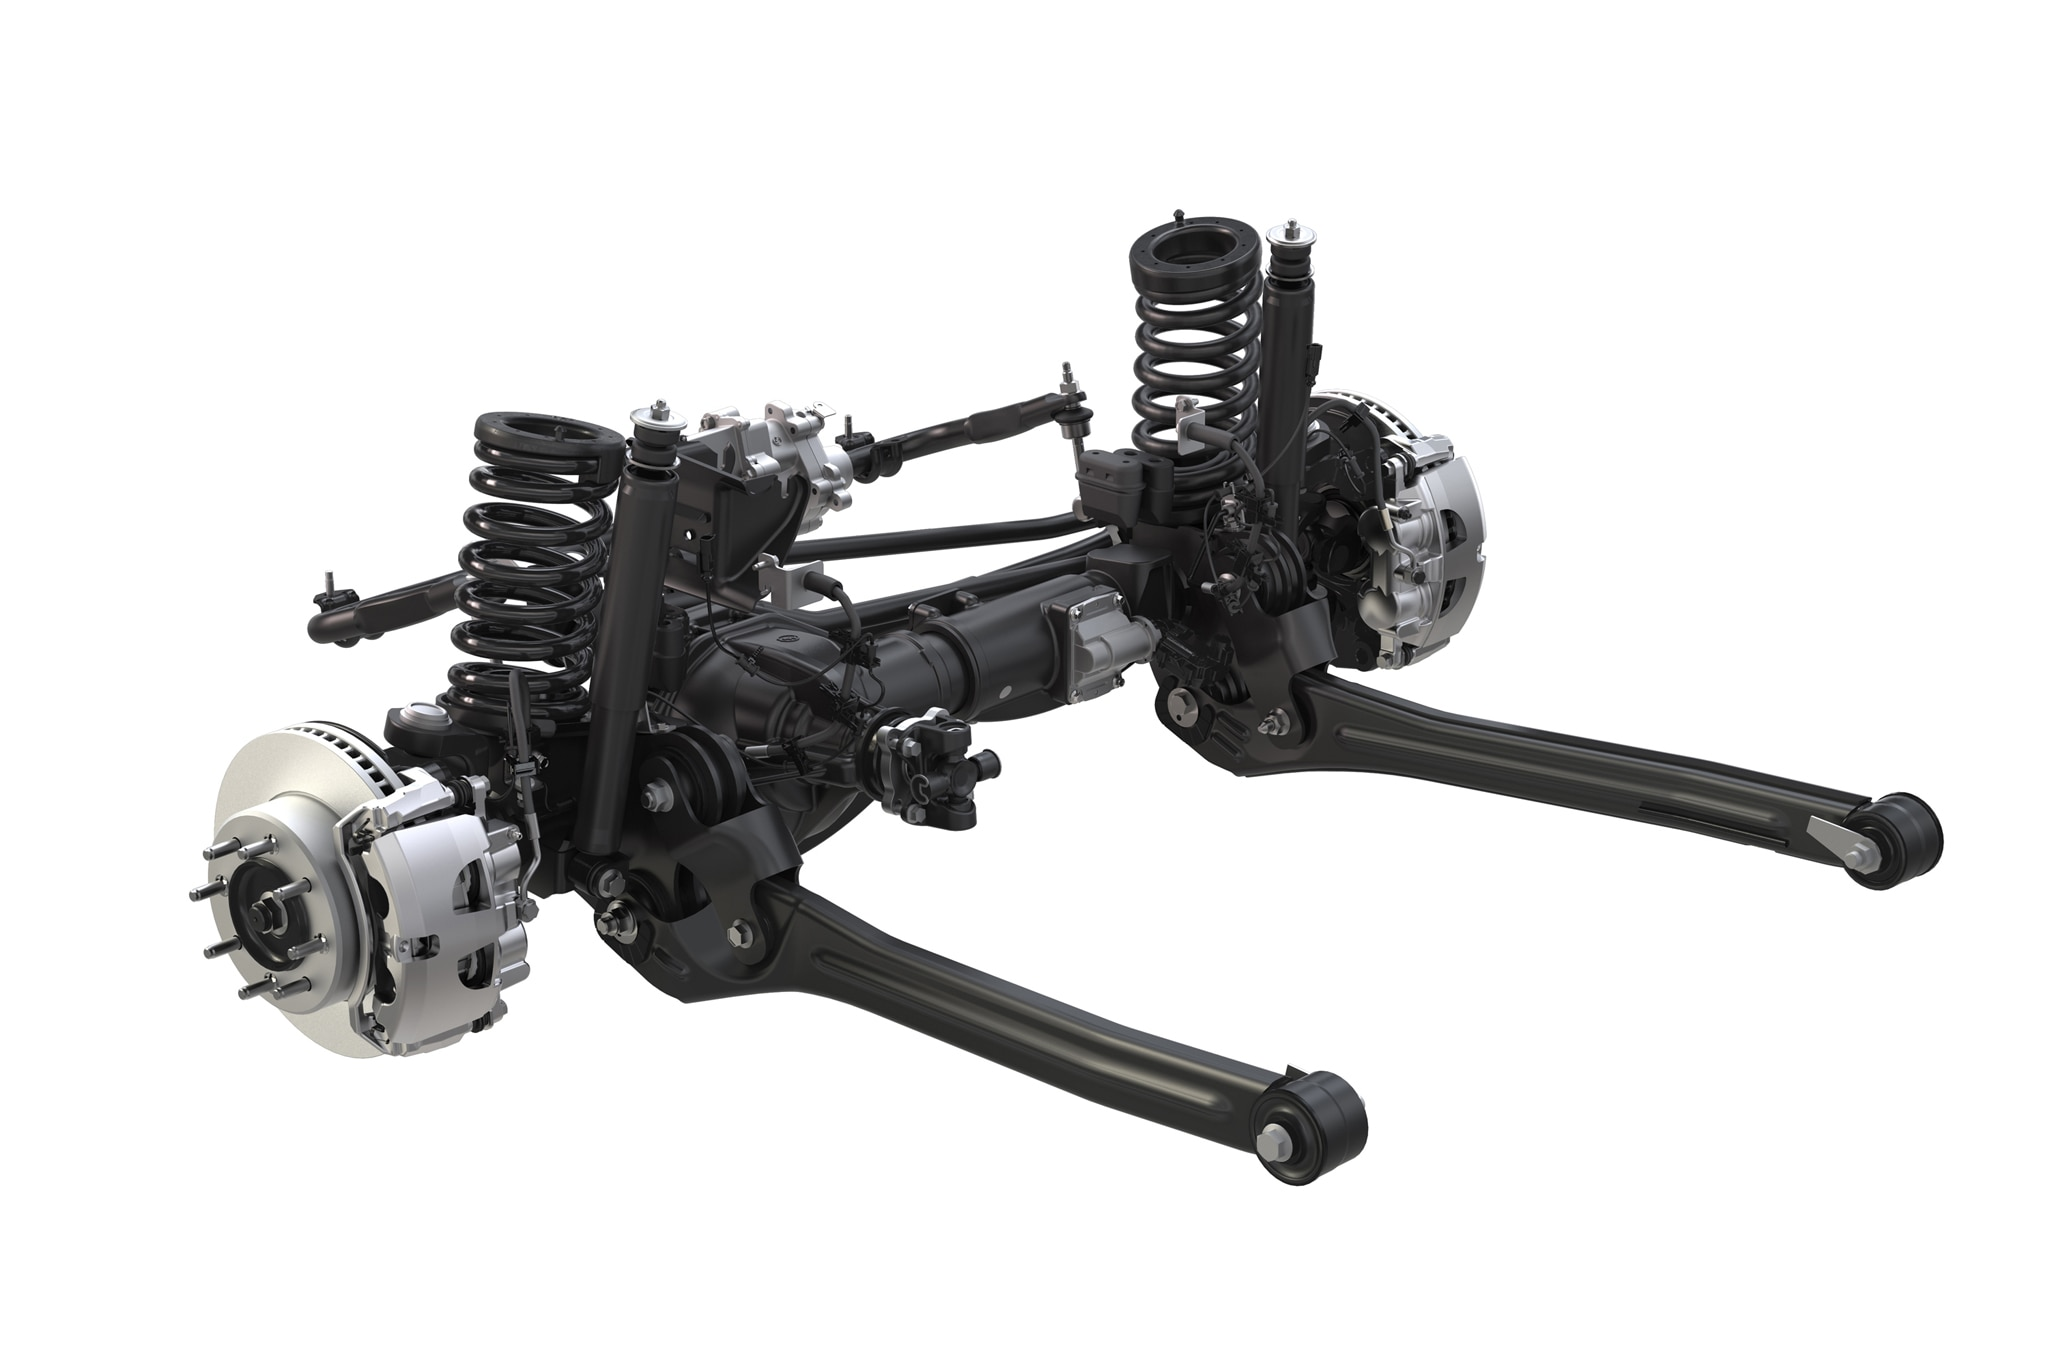 2014 Ram 2500 Power Wagon front axle